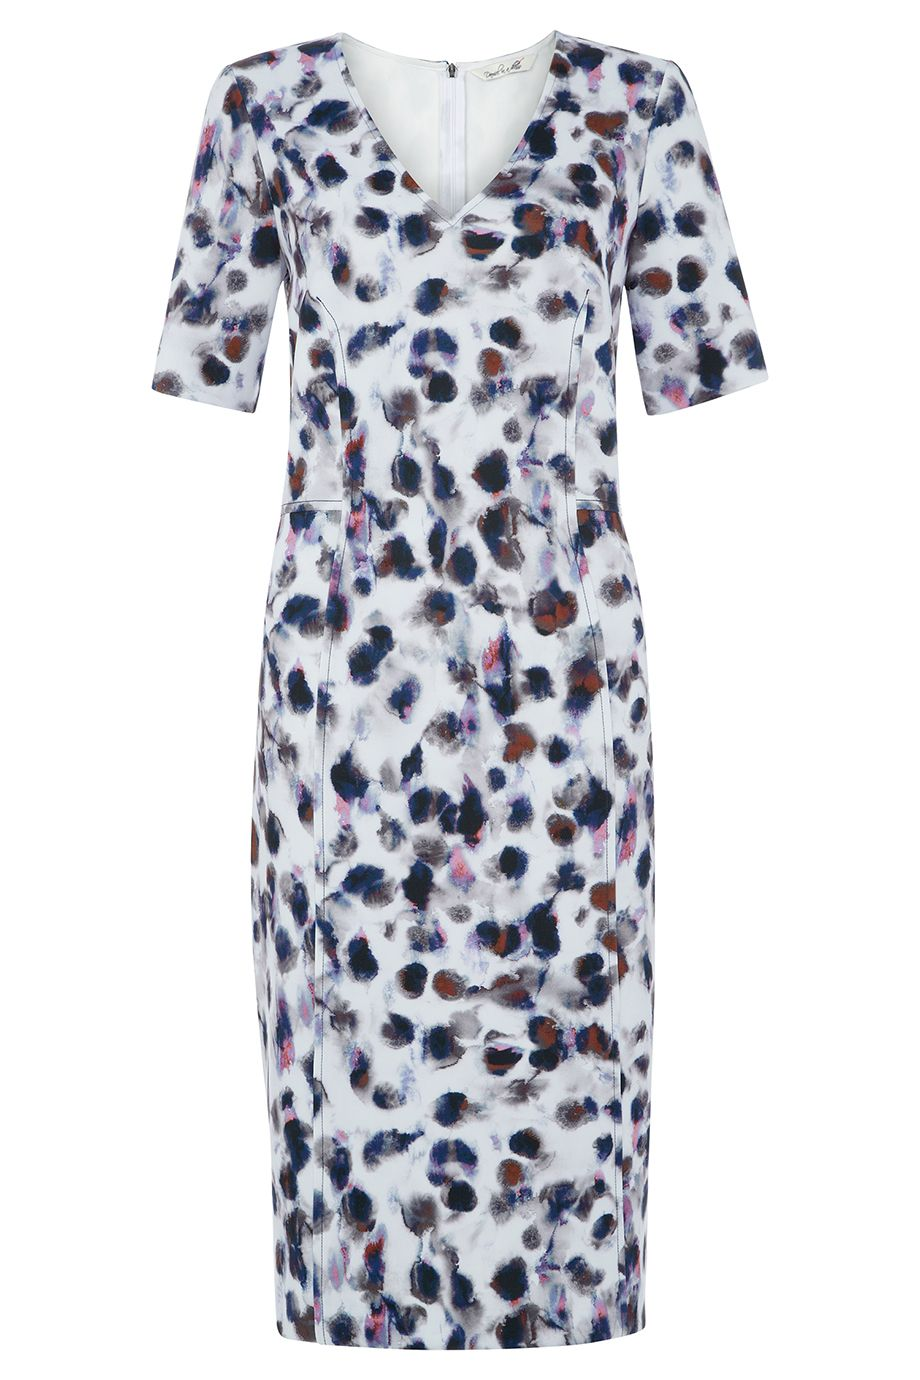 Damsel in a Dress Snow Leopard Dress, Multi-Coloured